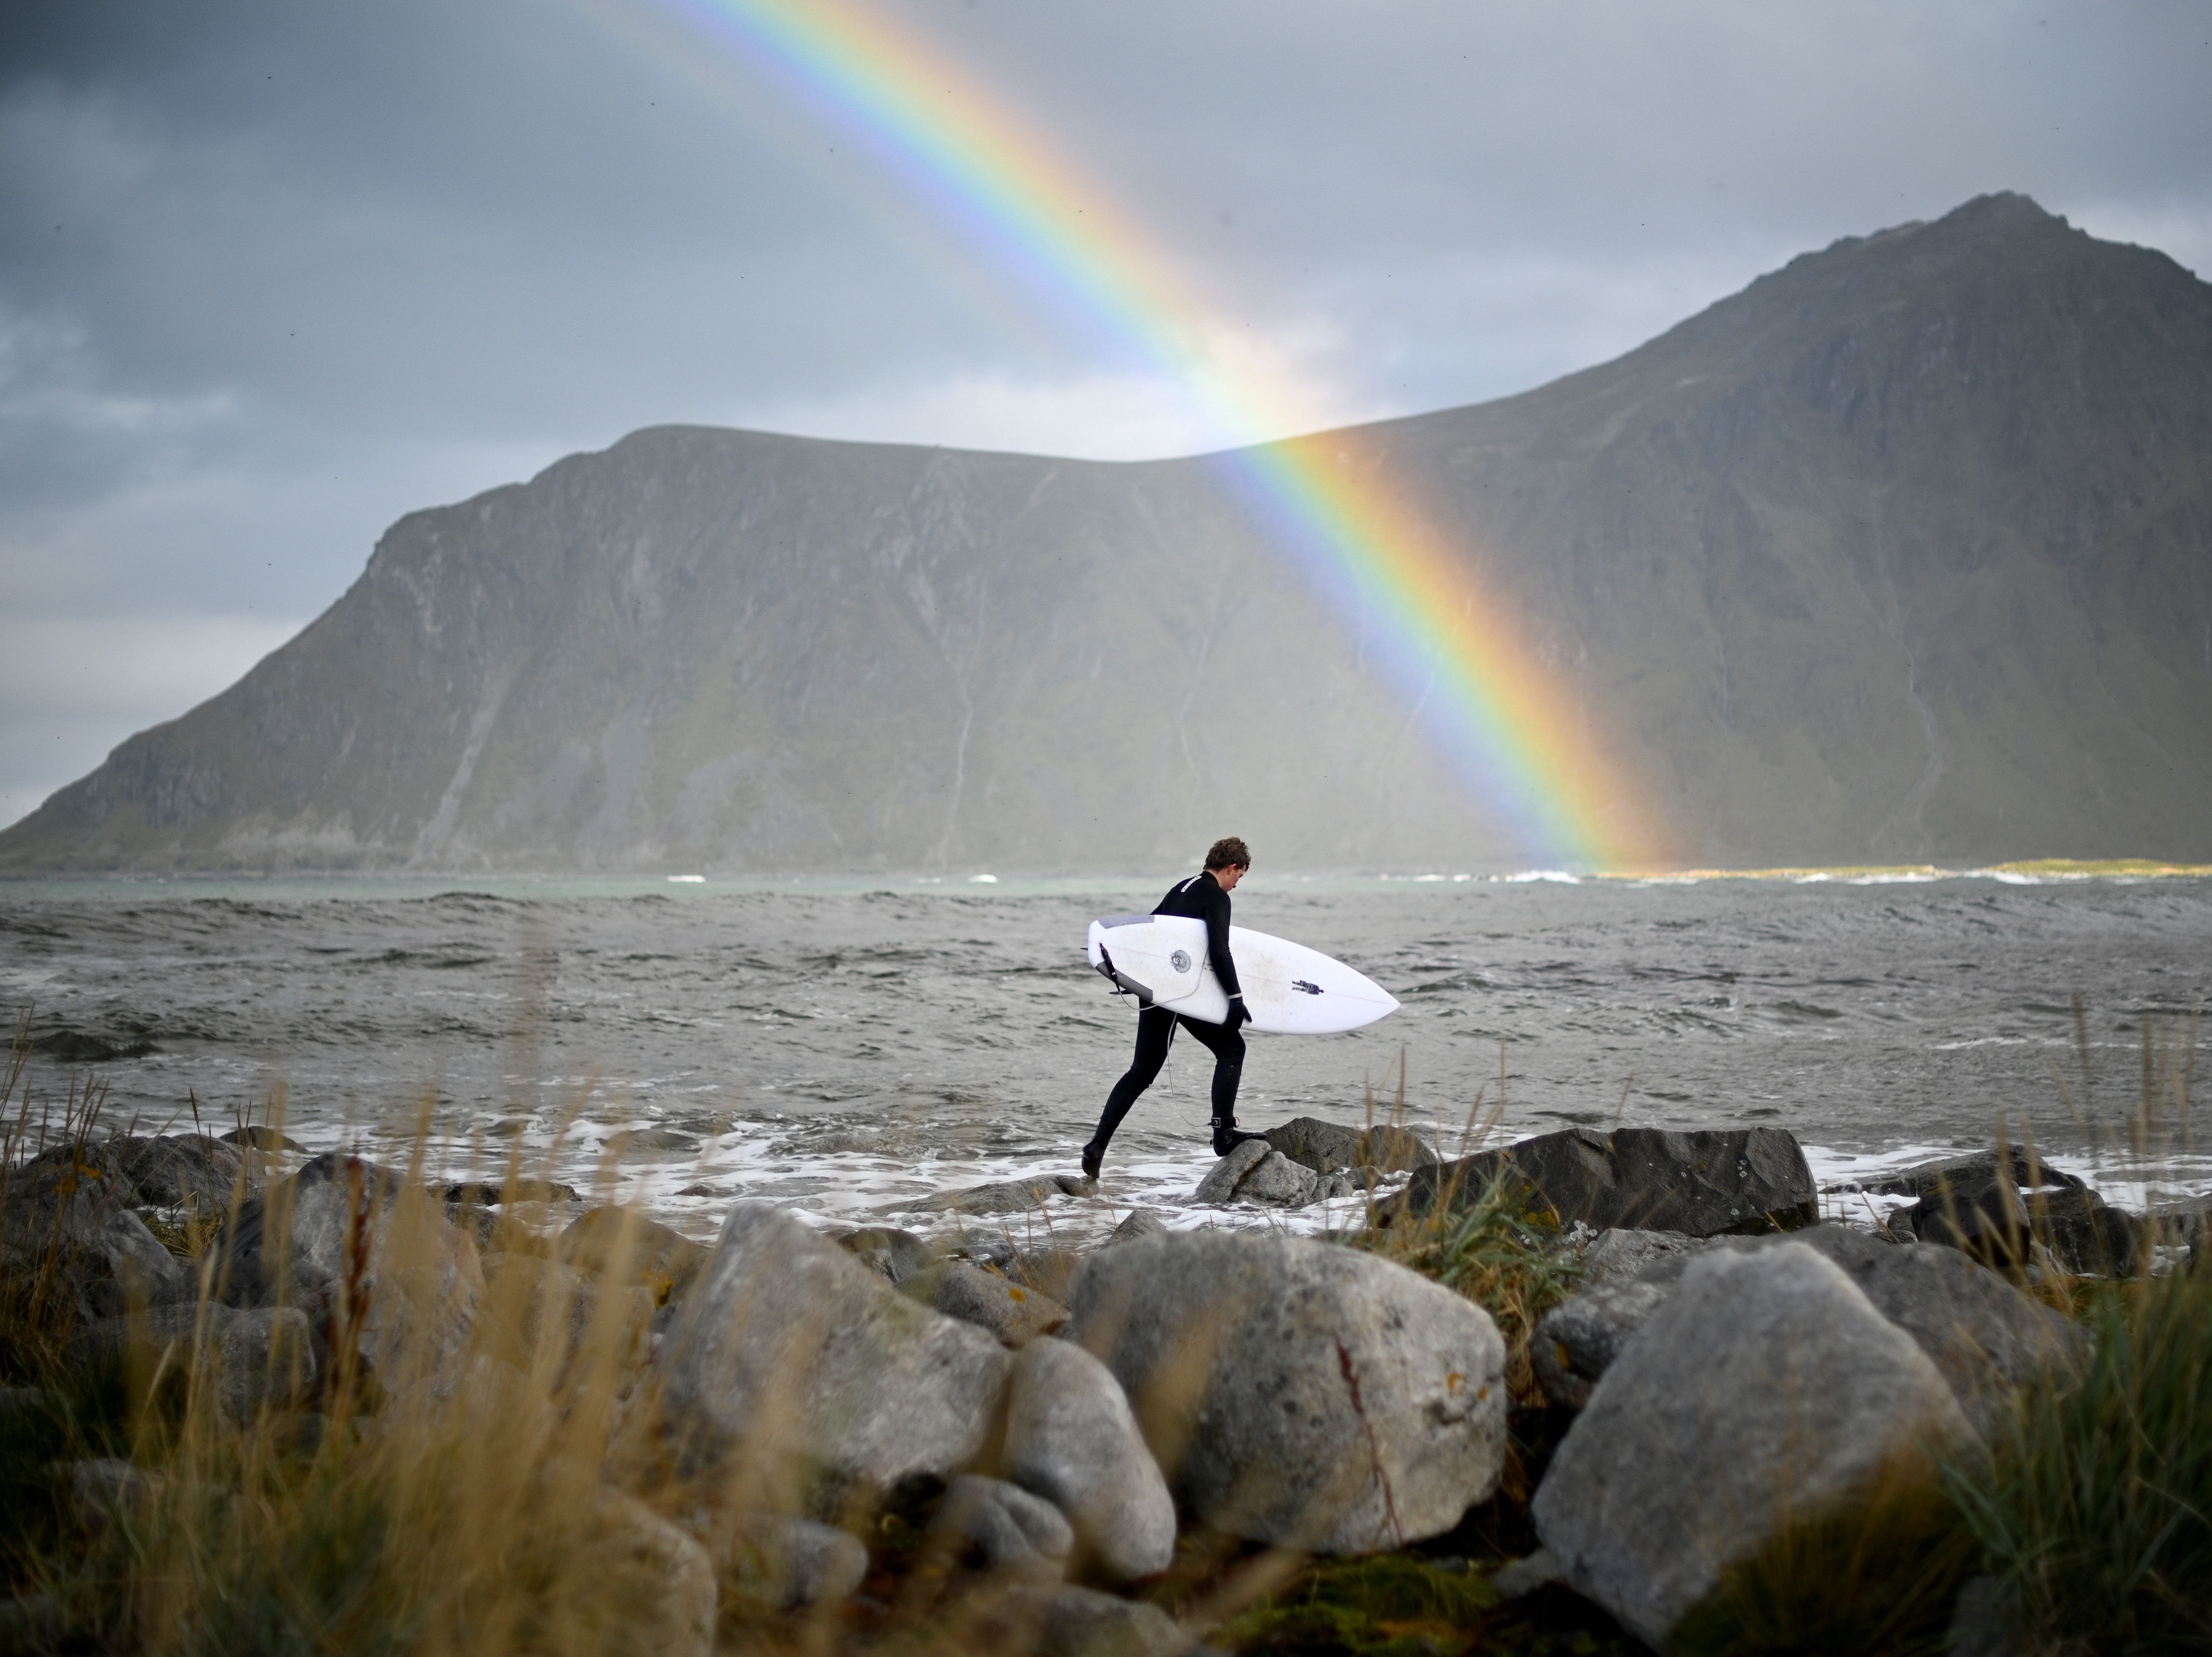 Surfer Anker Olsen Frantzen, 17, of Norway heads out for a free surf session on Sept. 26, 2018,  in Flackstad, Northern Norway, on the eve of the Lofoten Masters 2018. The most-northern surf contest will be held from Sept. 27-30, in Unstad, within the Arctic circle.